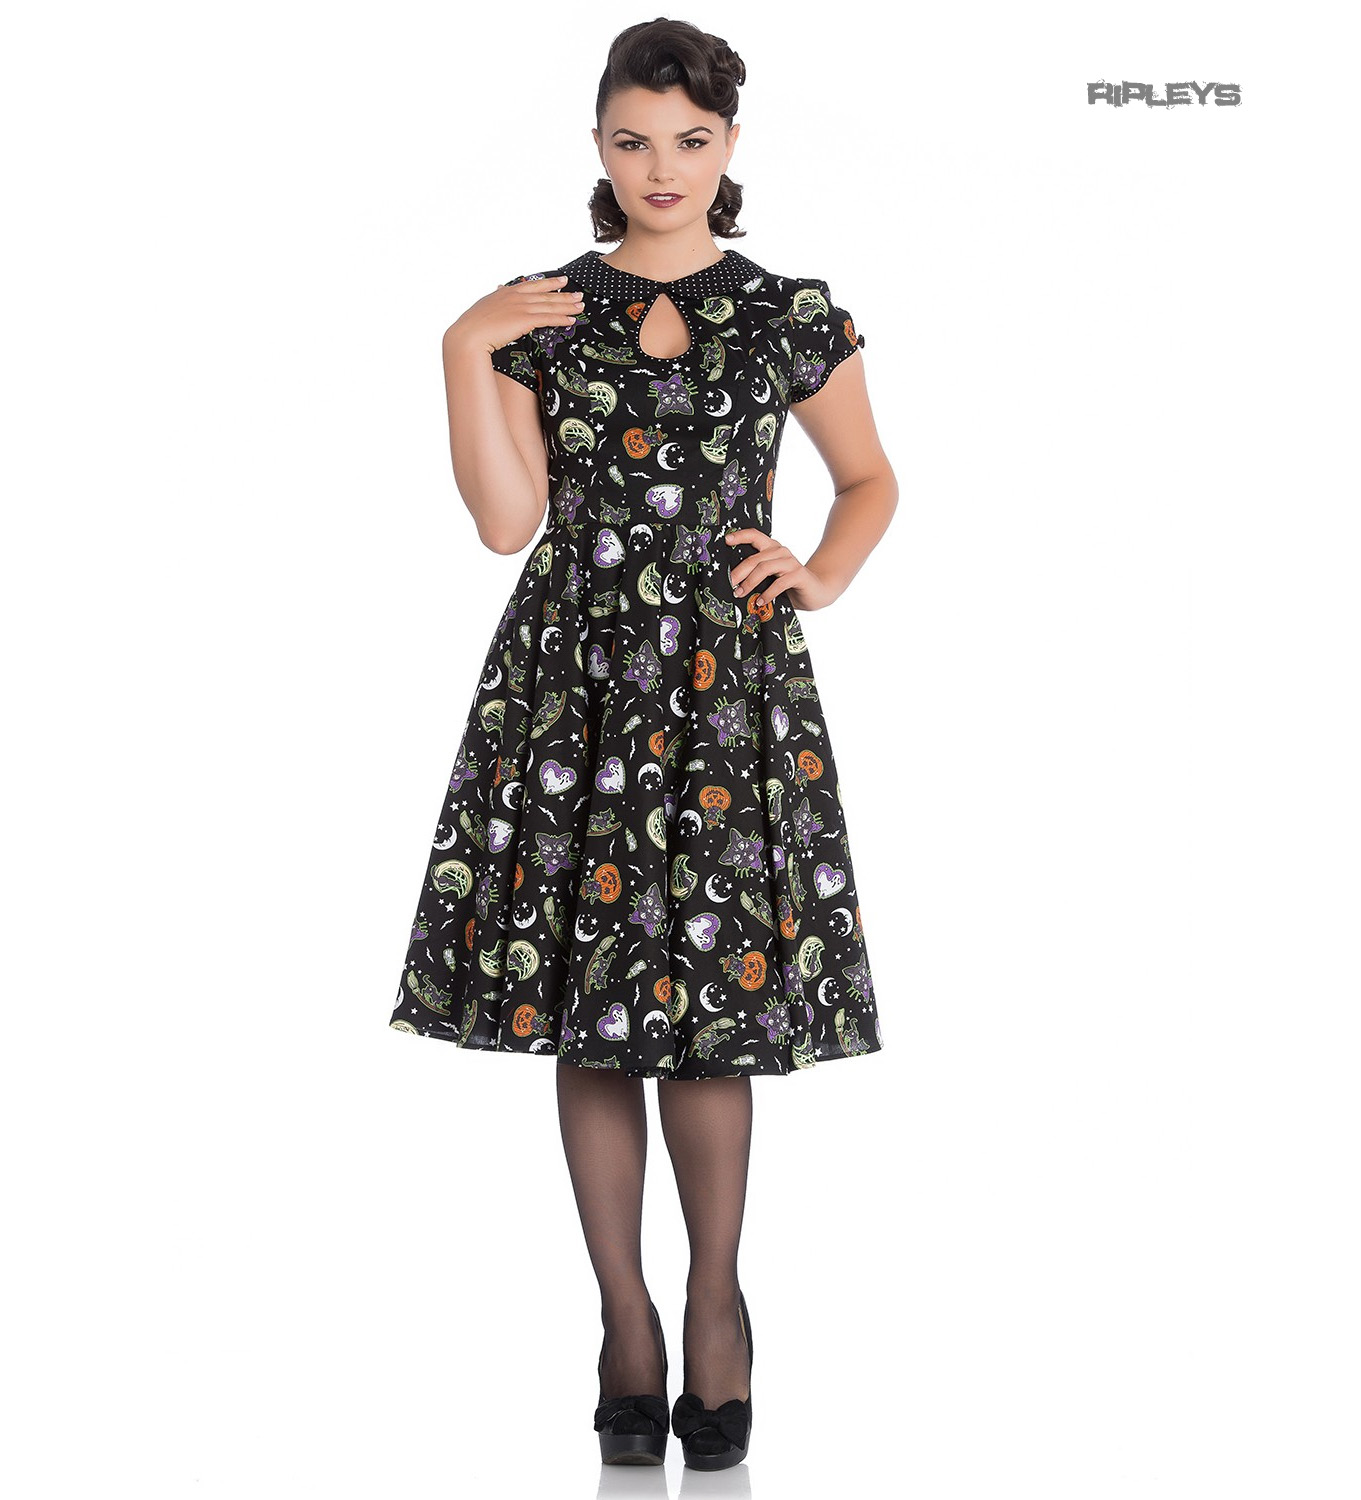 Hell-Bunny-50s-Black-Pin-Up-Dress-Horror-Witchy-SALEM-Halloween-All-Sizes thumbnail 2